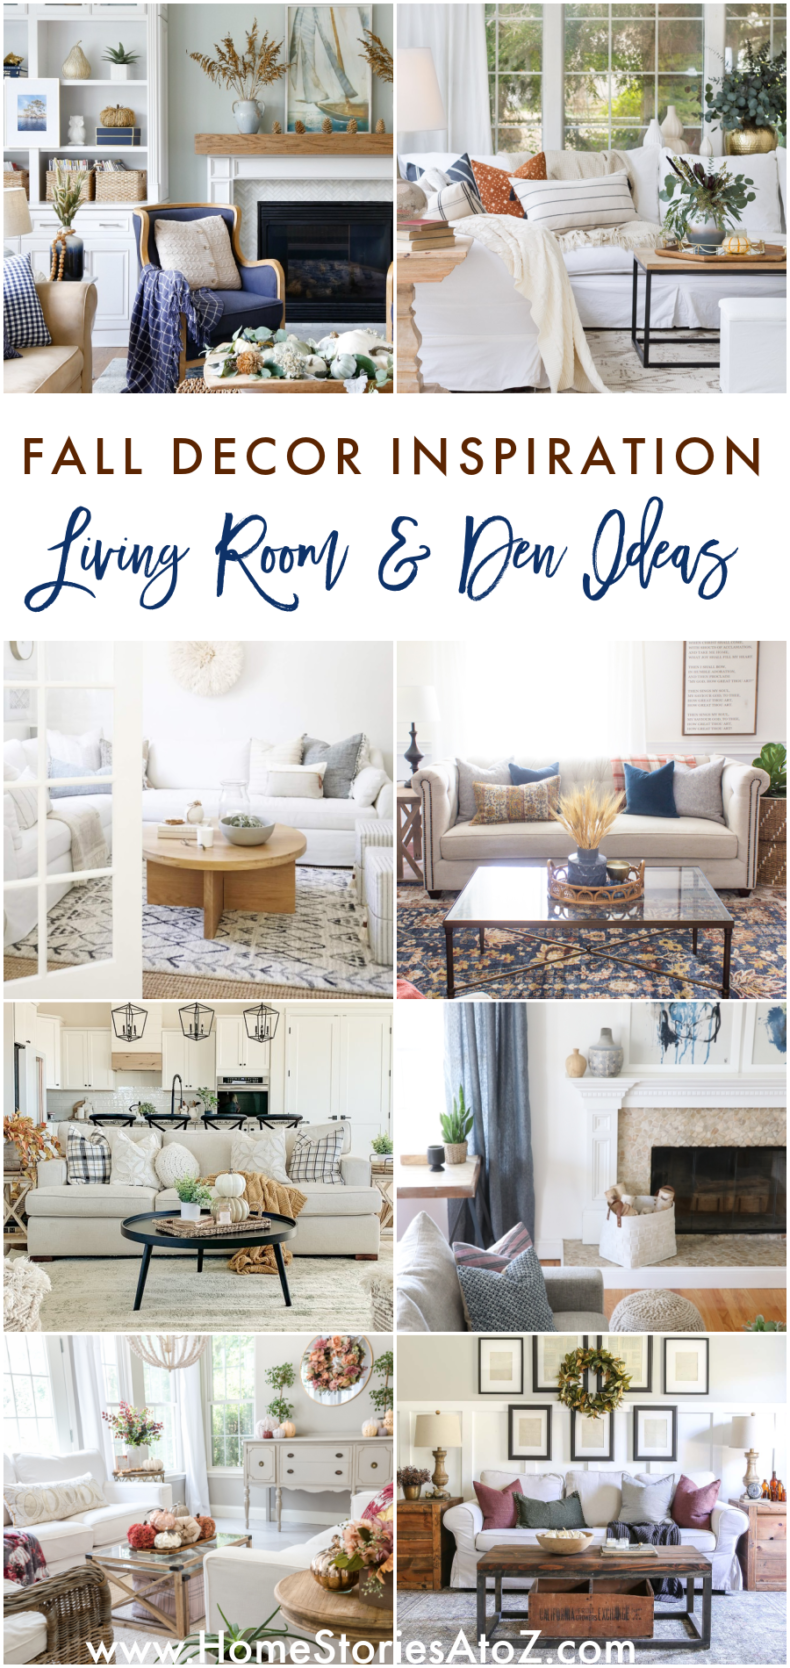 Fall Decor Ideas - Fall Living Rooms and Dens